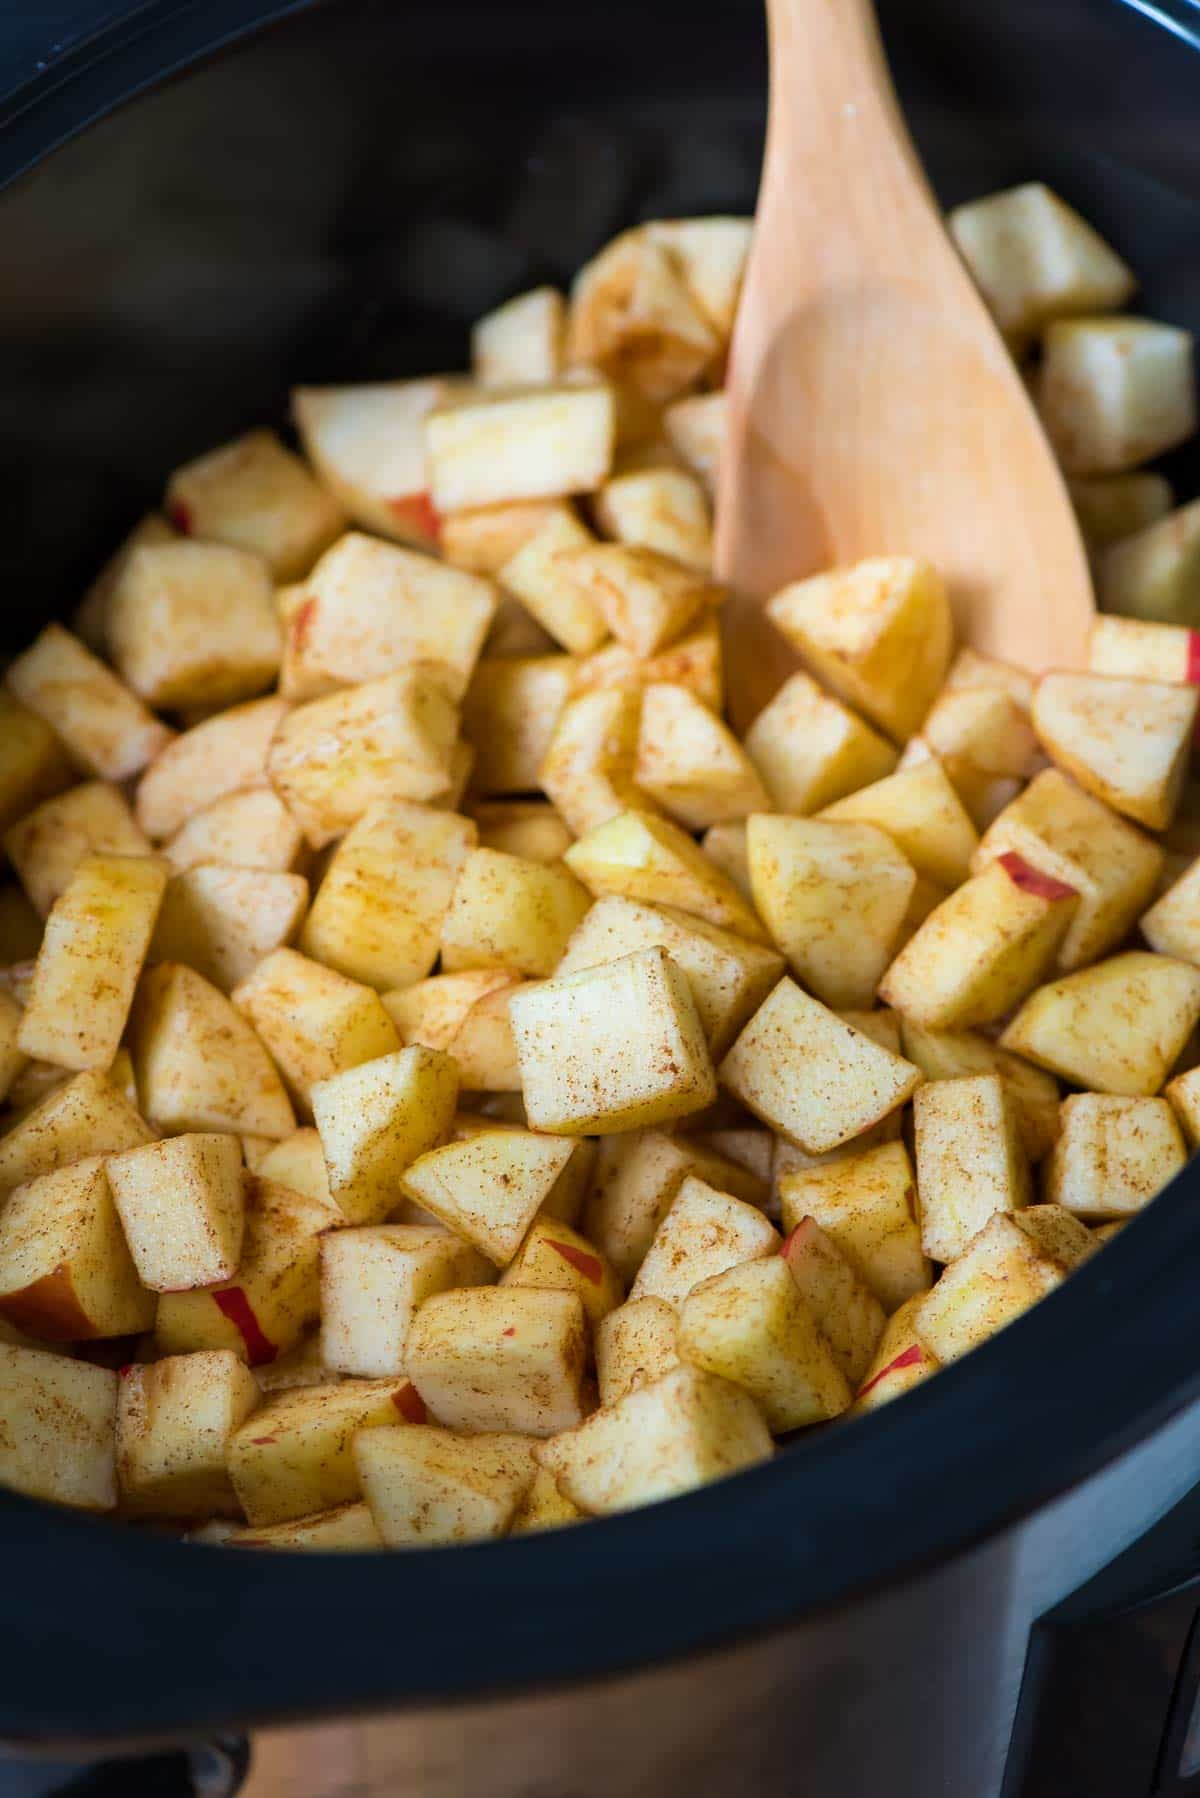 Diced apples in a slow cooker